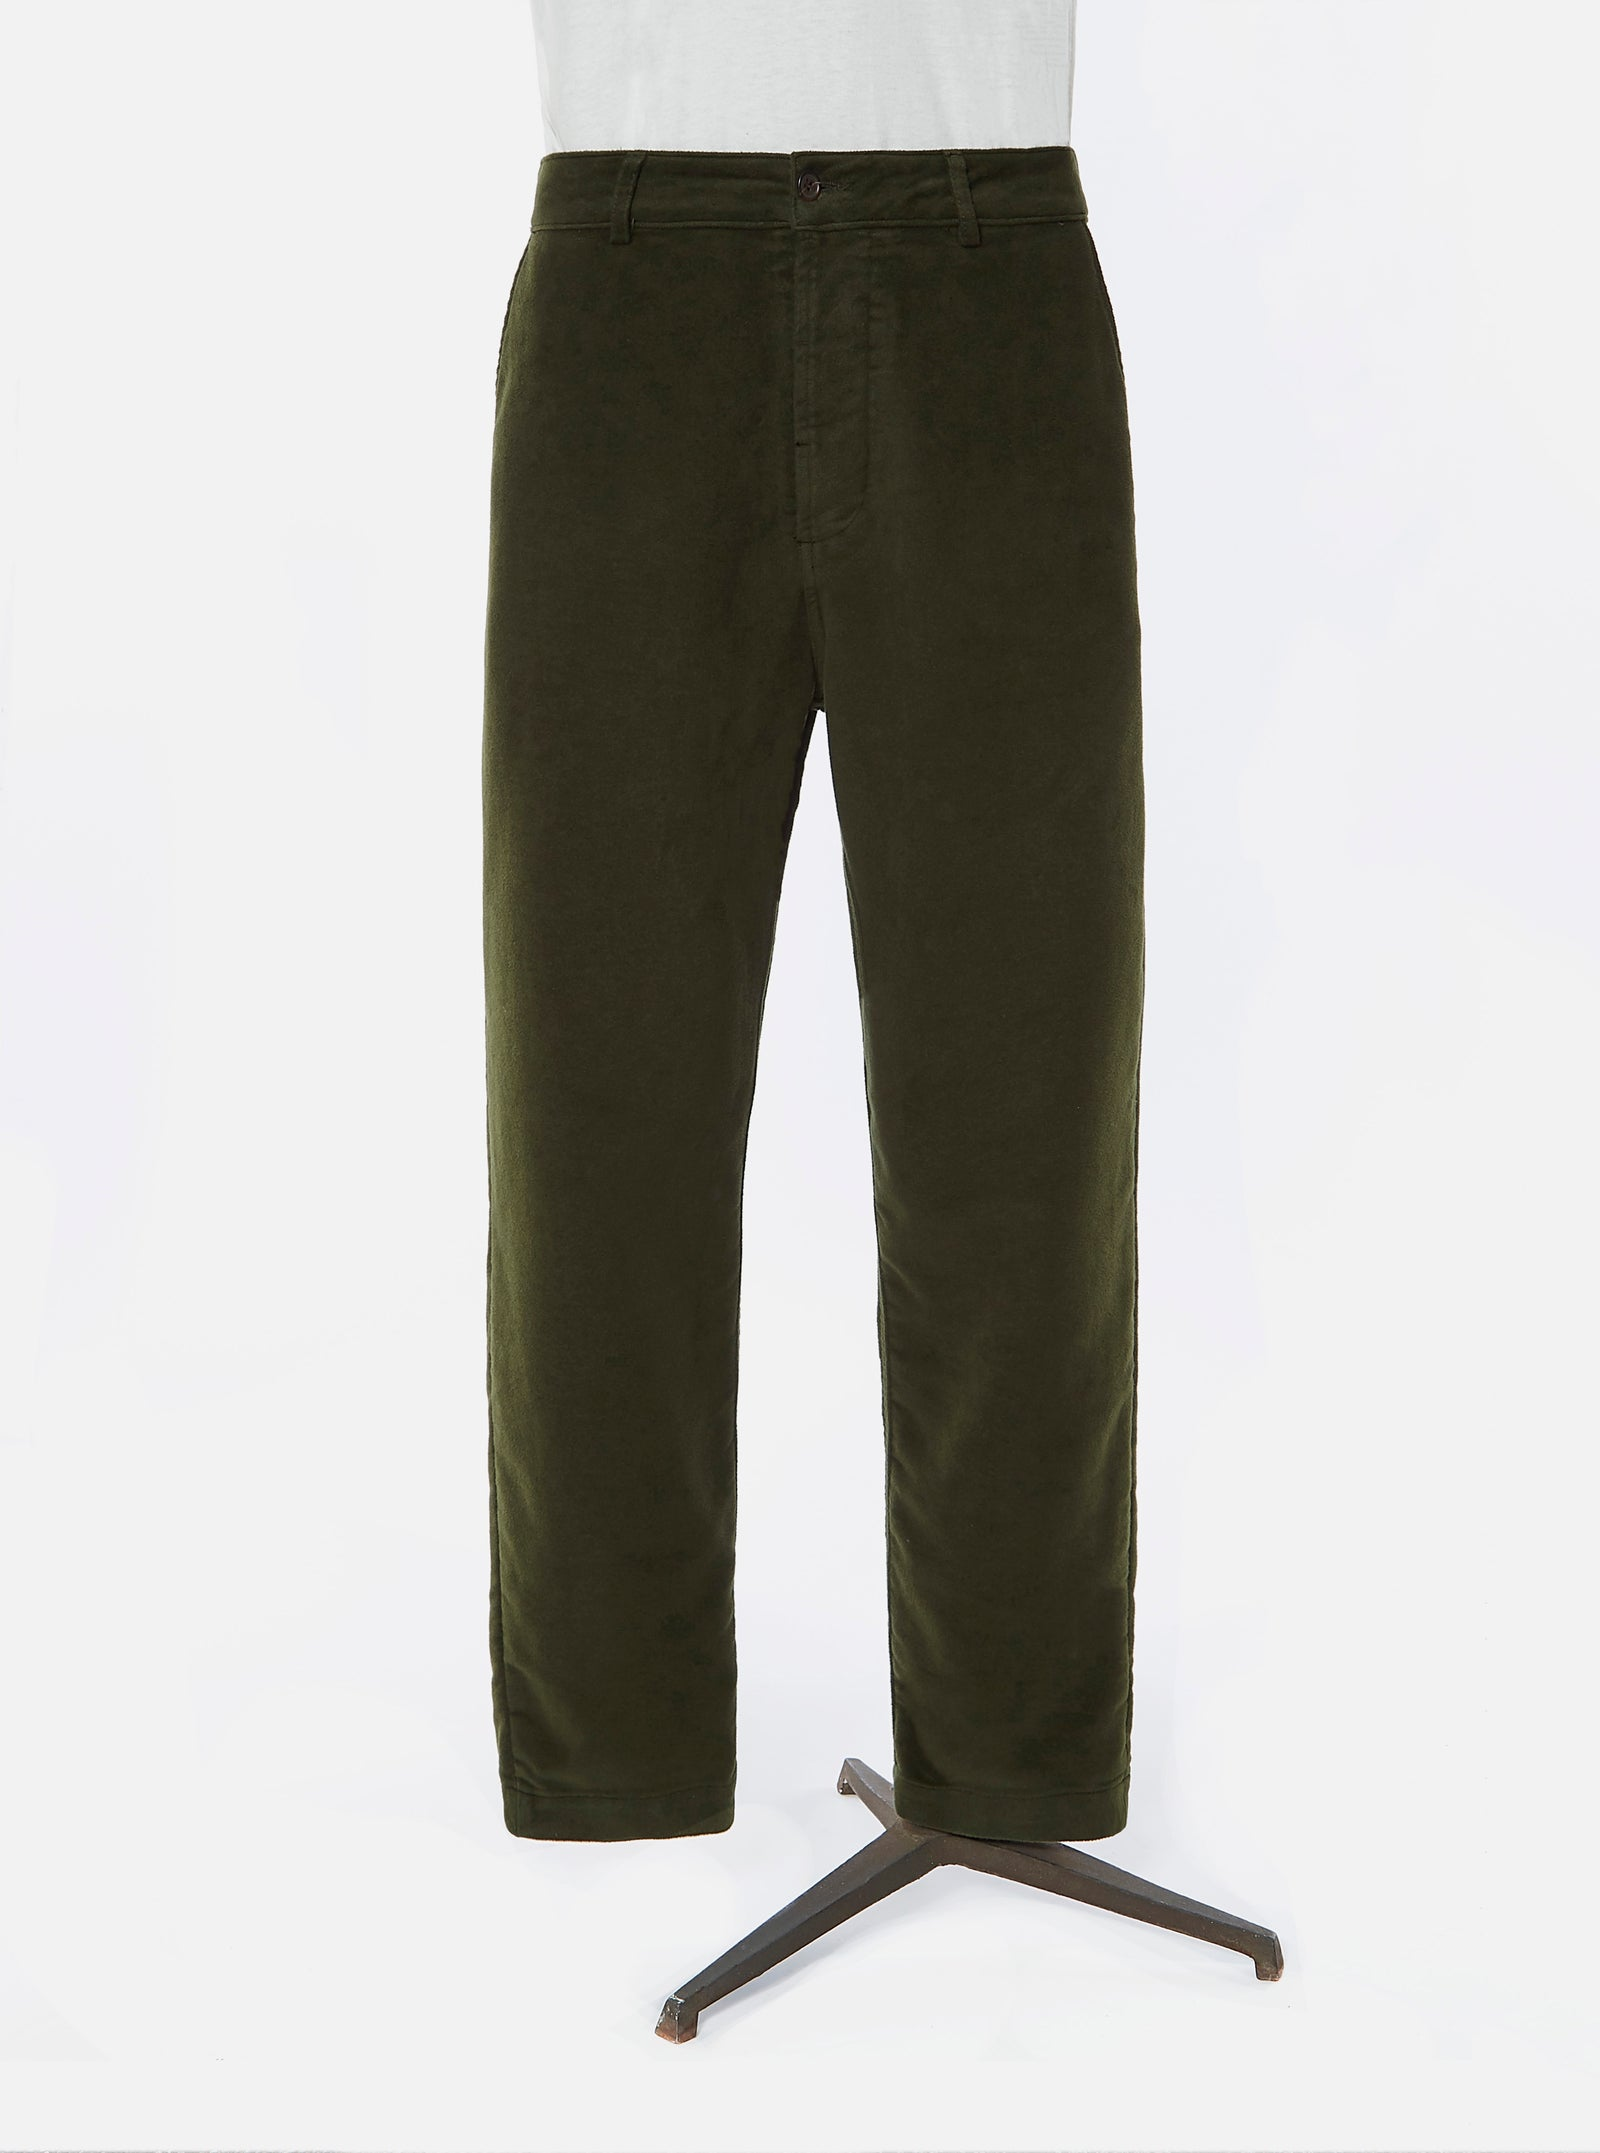 Pyrenex x Universal Works Military Chino in Sauge Moleskin